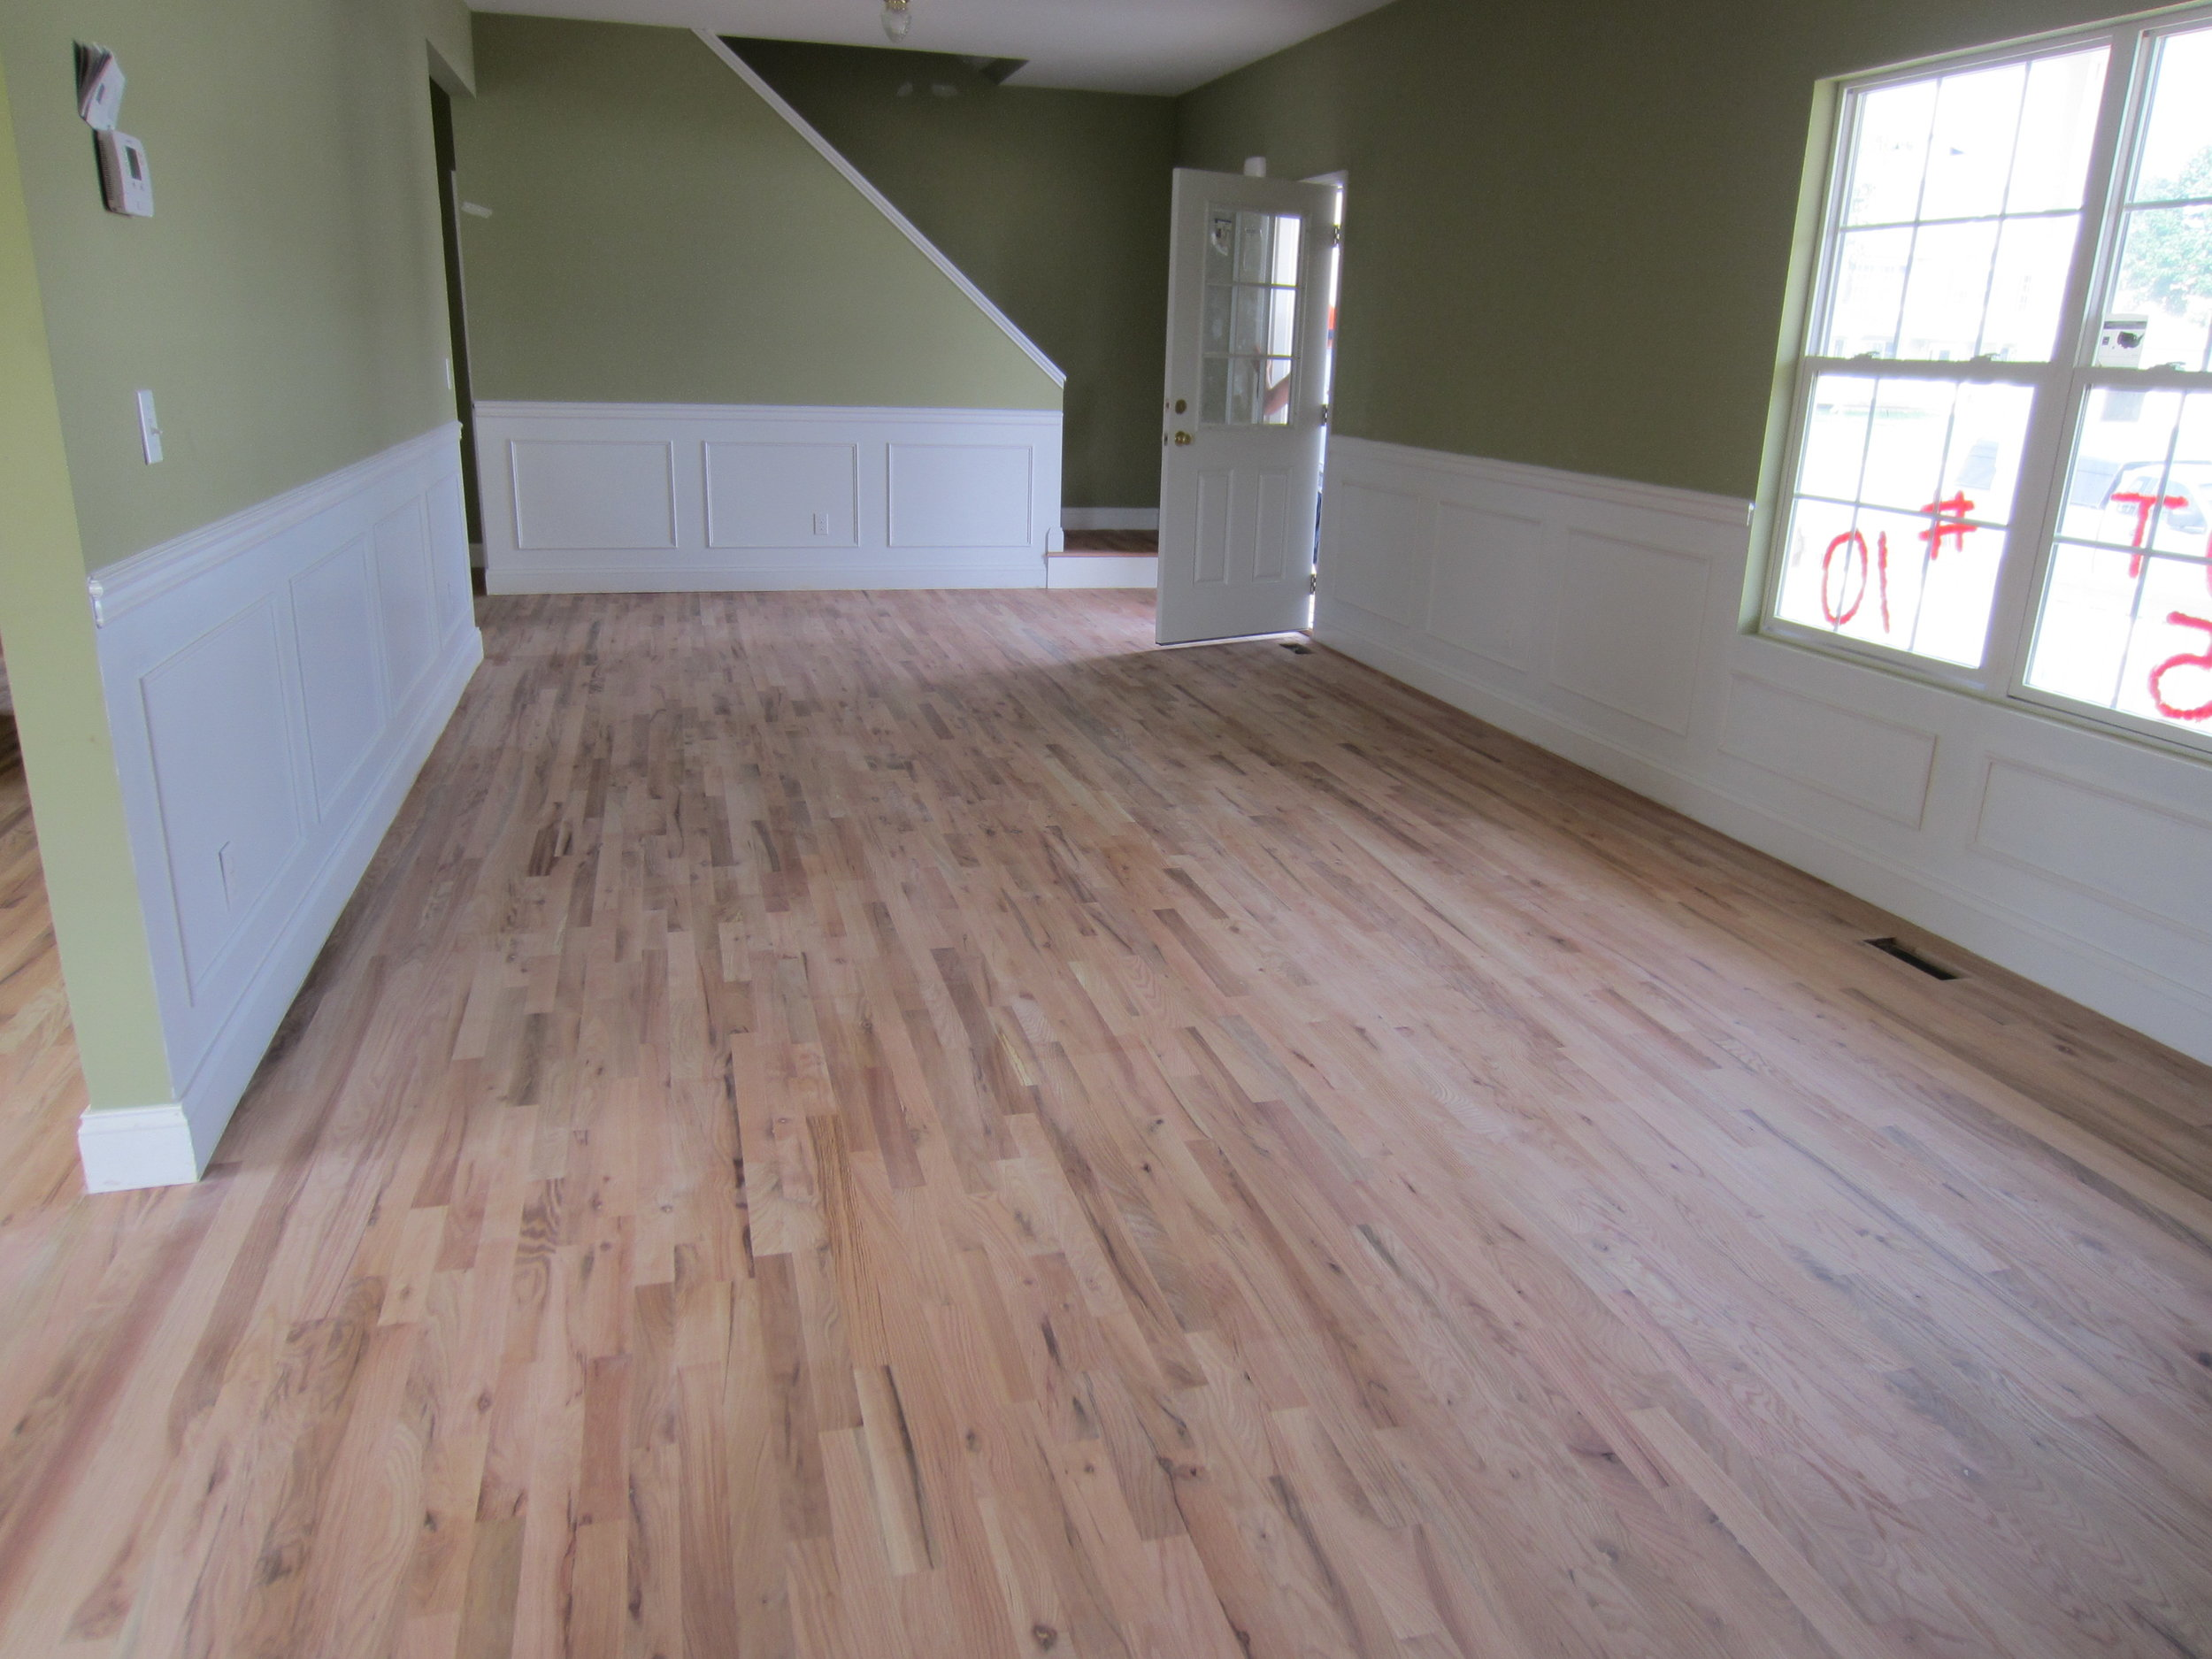 HARDWOOD FLOOR REFINISHING PROJECT HOW LONG DOES IT TAKE — Valenti